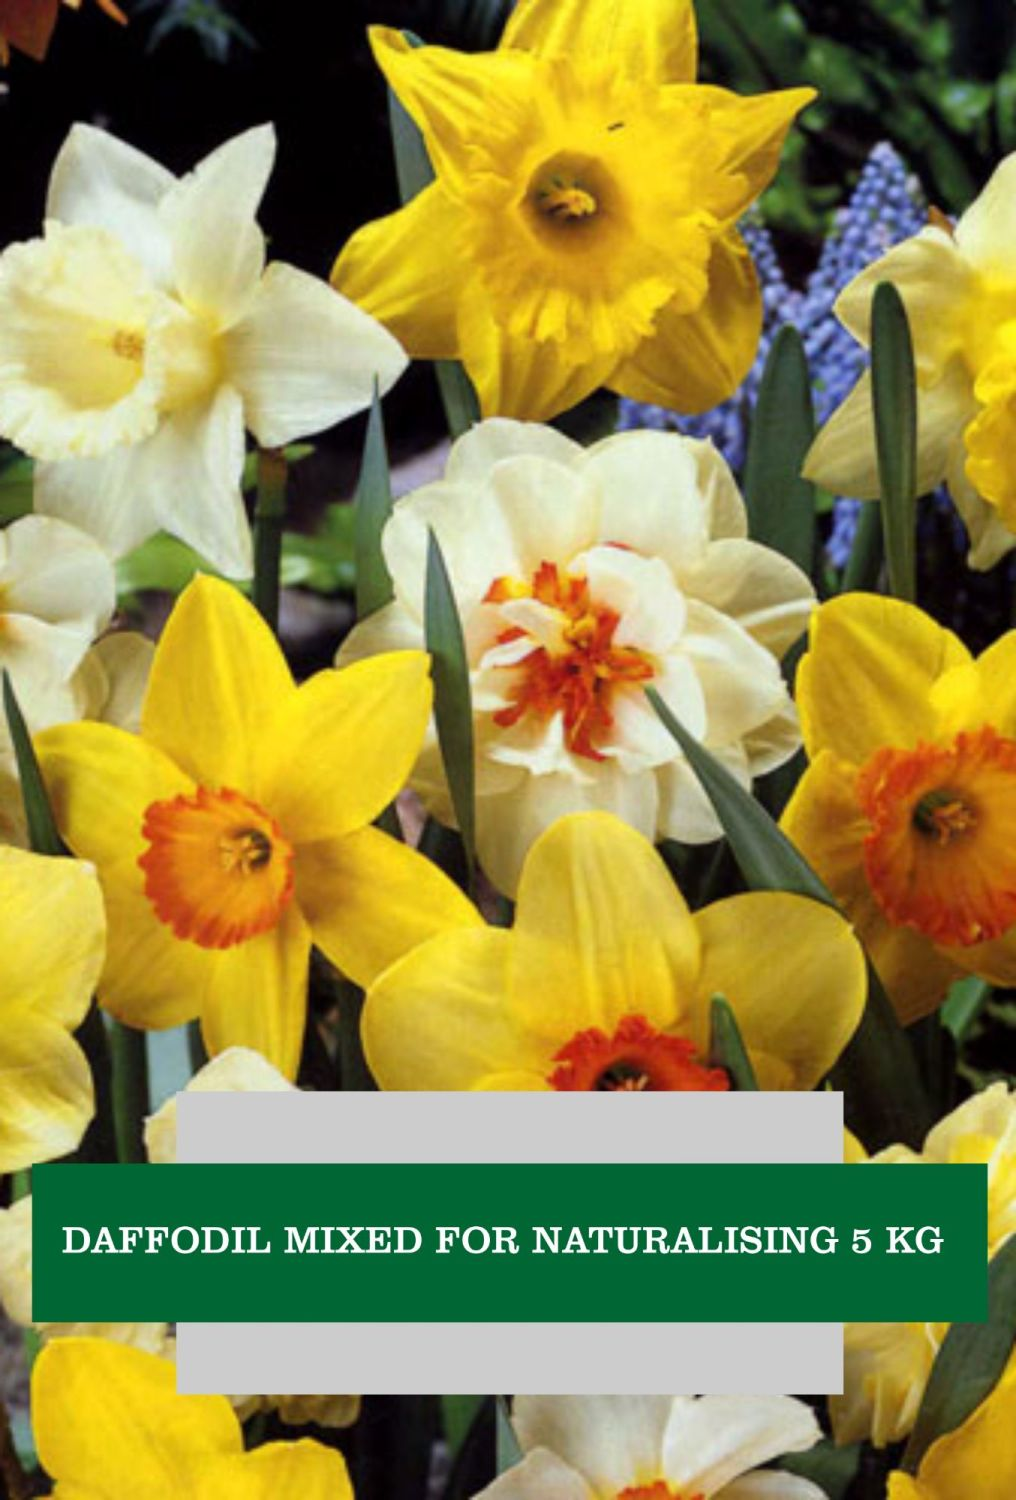 DAFFODILS MIXED FOR NATURALISING 5 KG